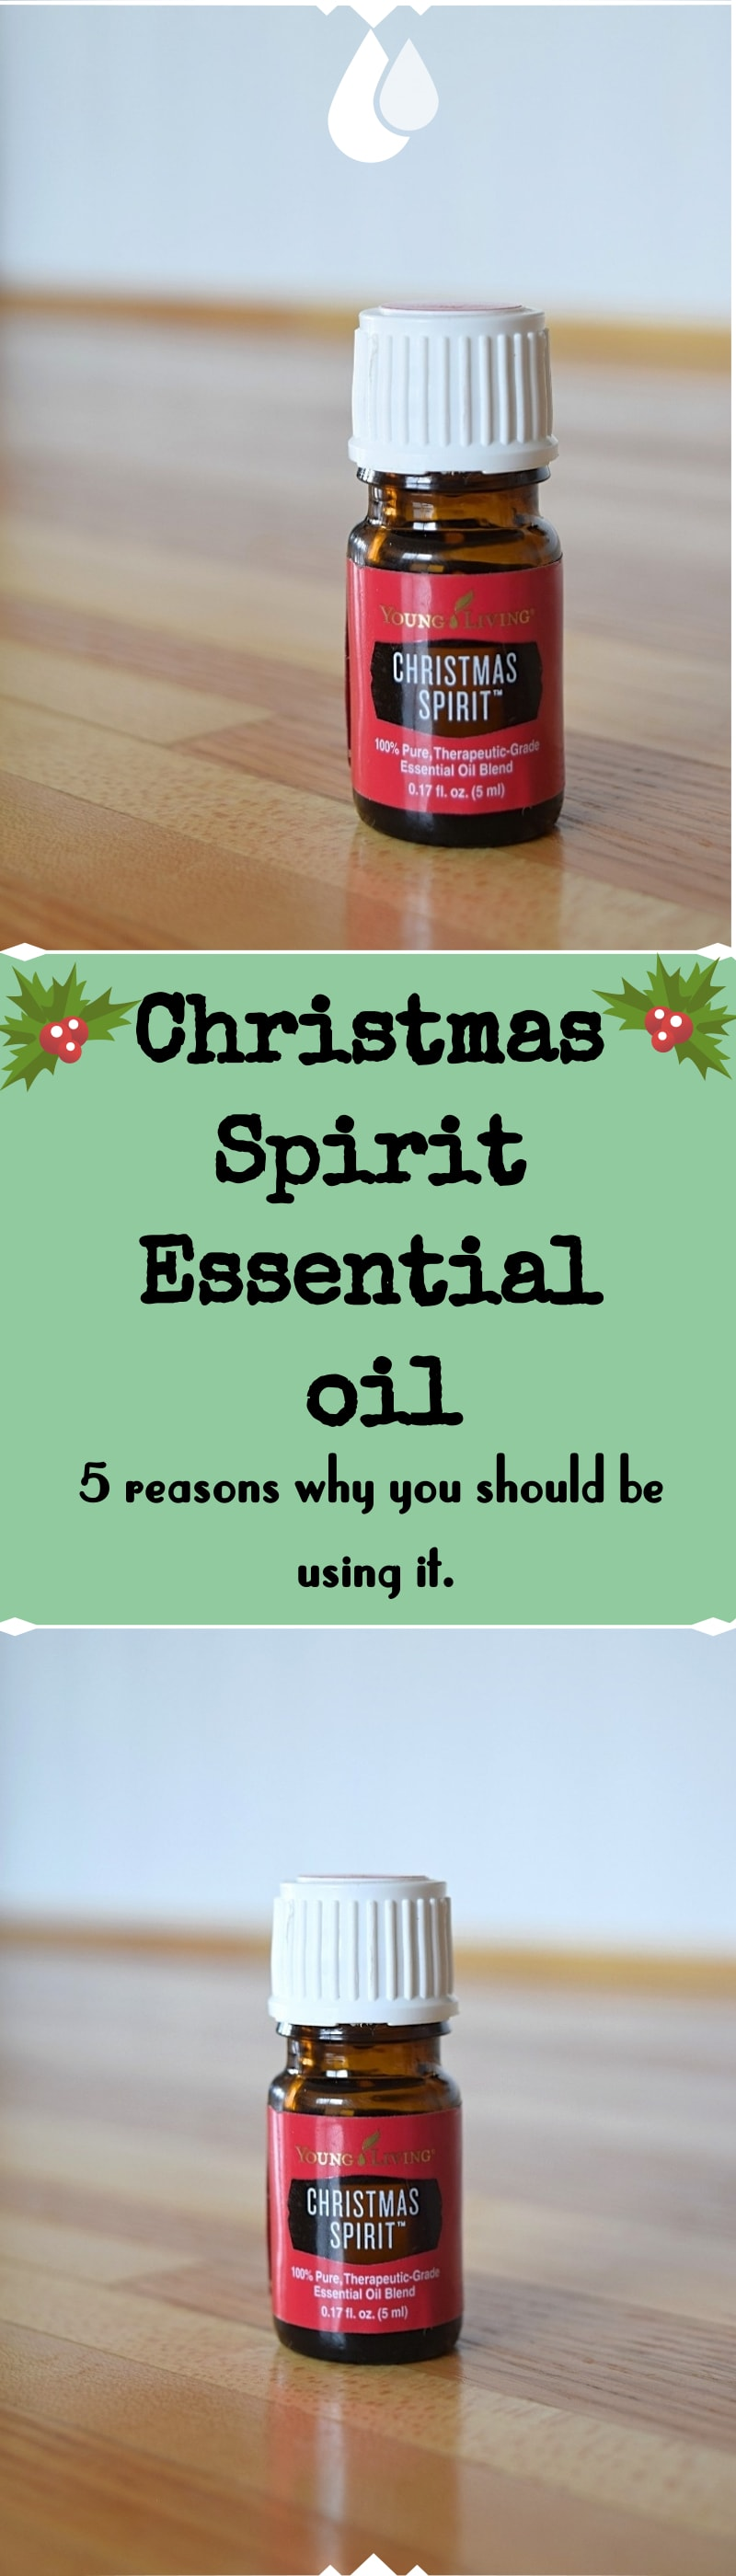 for more information check out my essential oil page the other reasons why in the series and essential oils for cats and dogs - Young Living Christmas Spirit